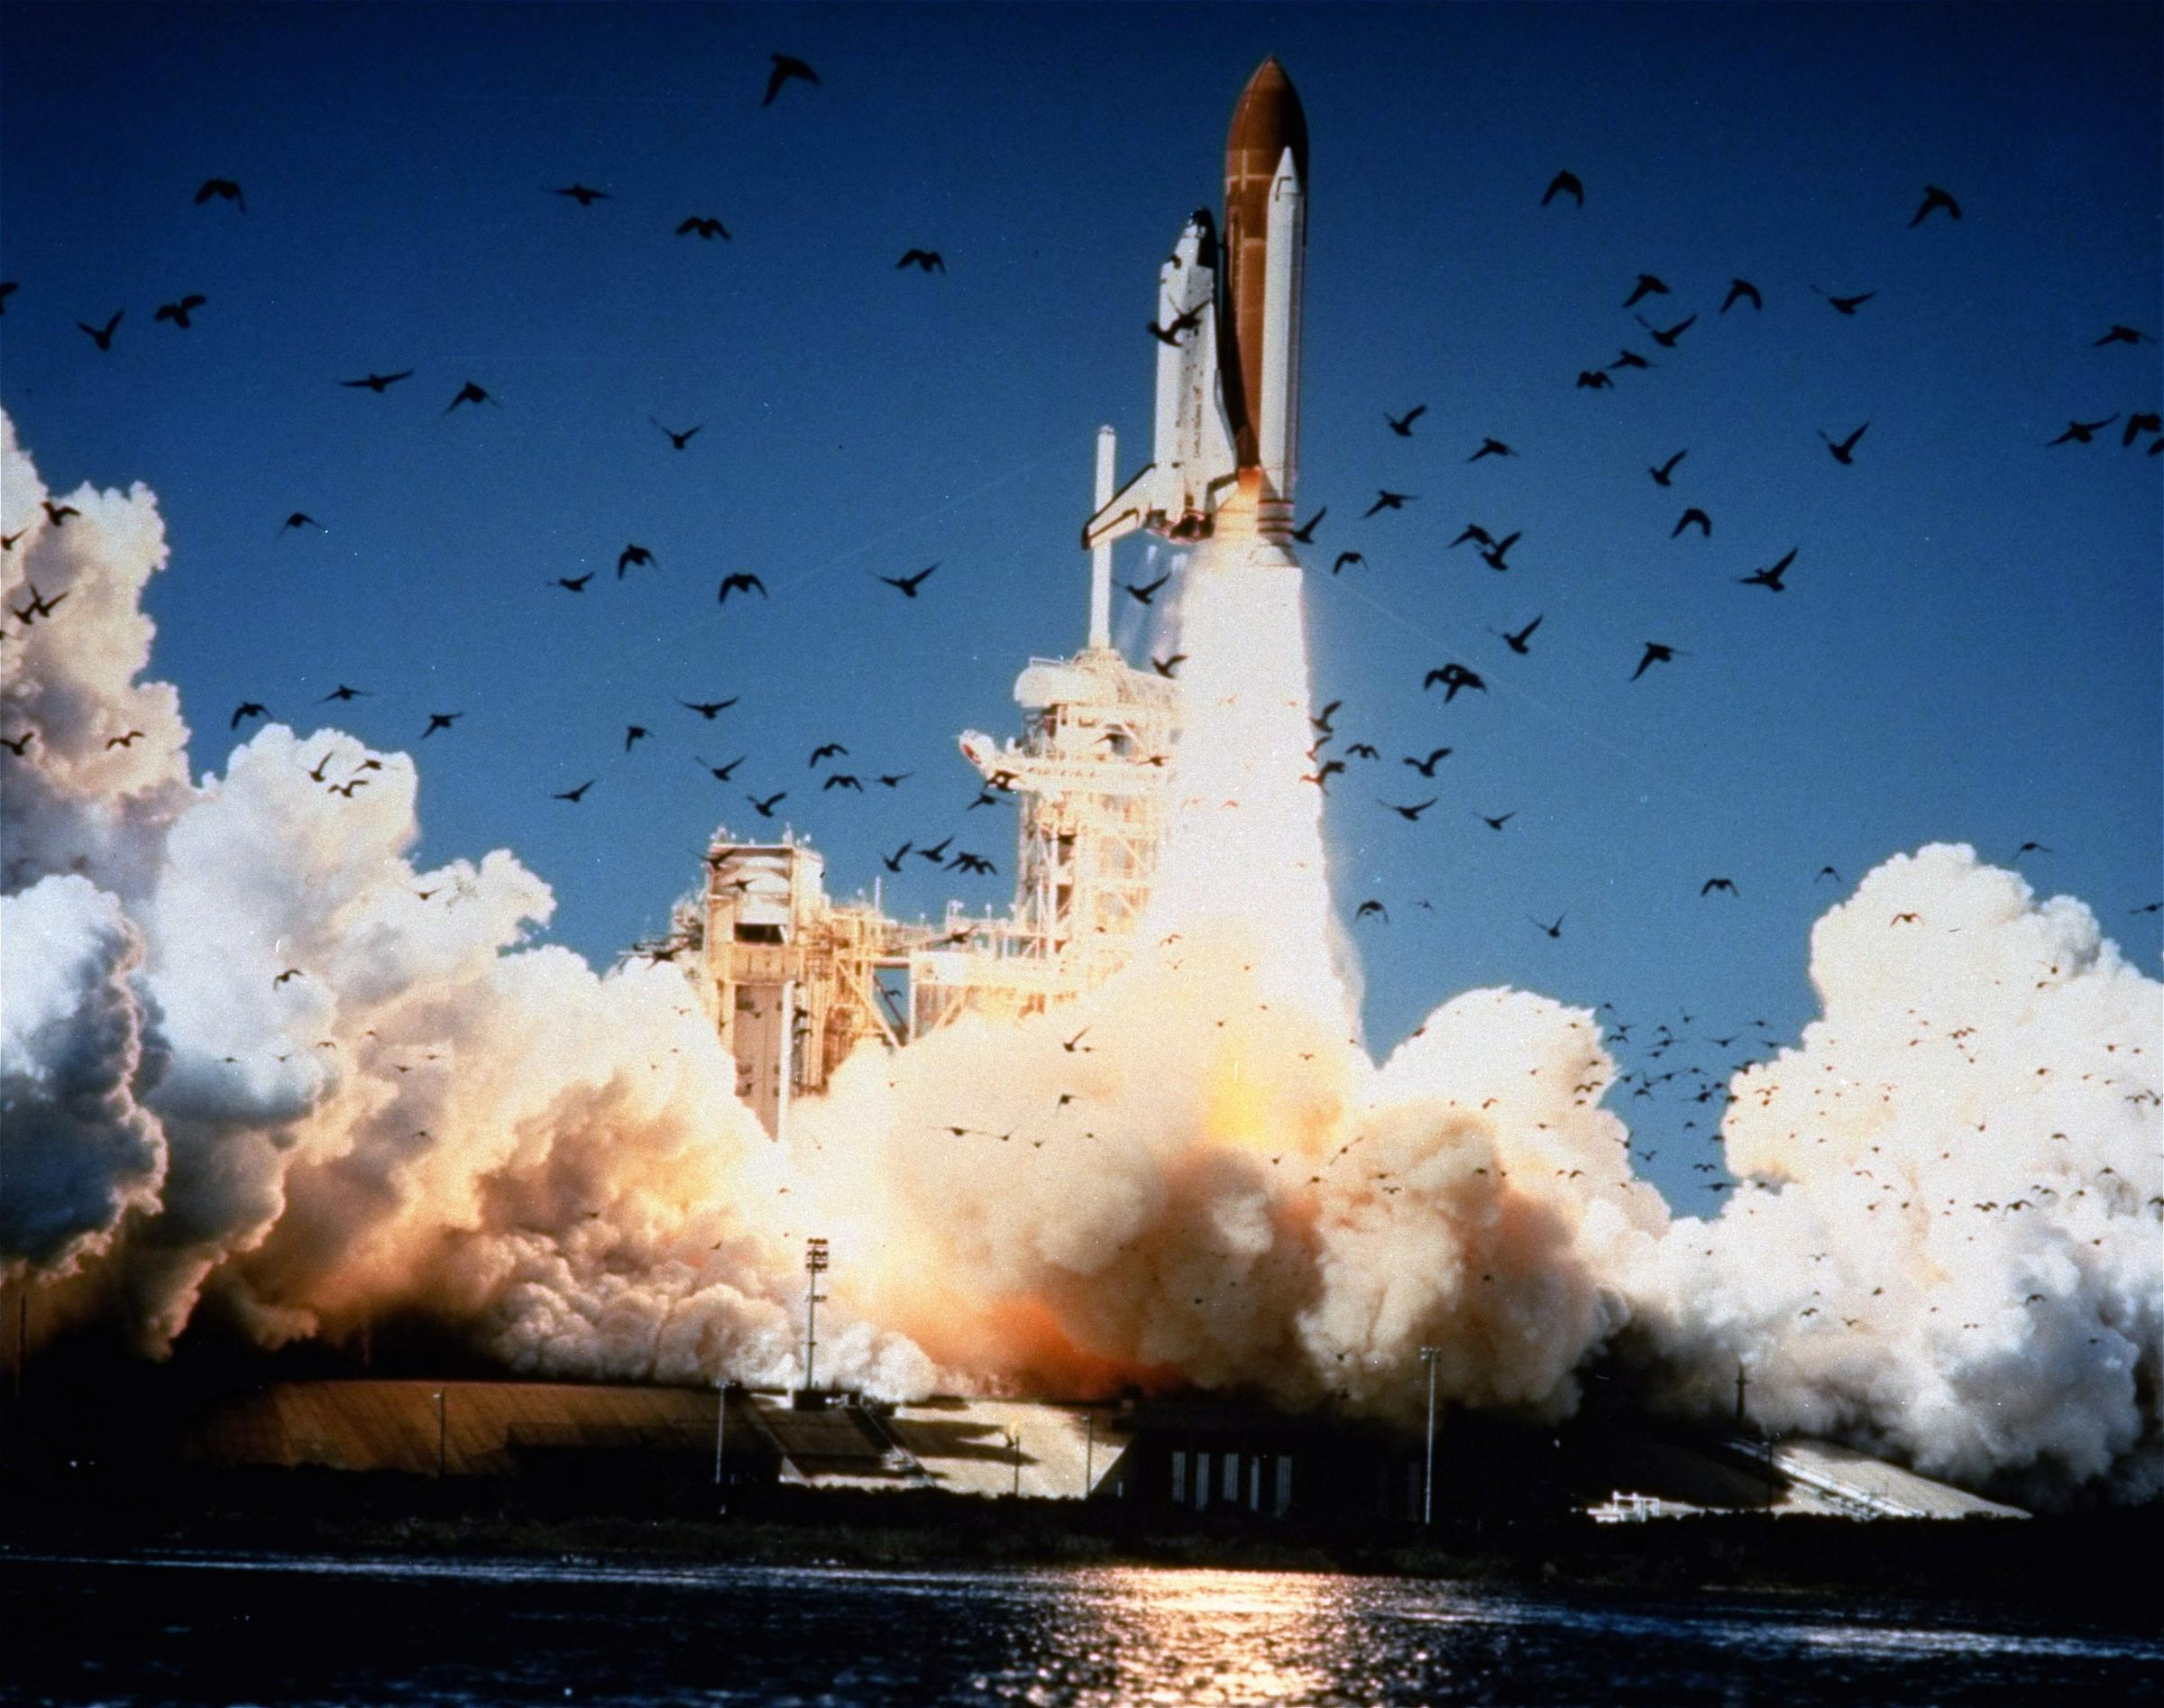 space shuttle explosion 1986 - photo #15